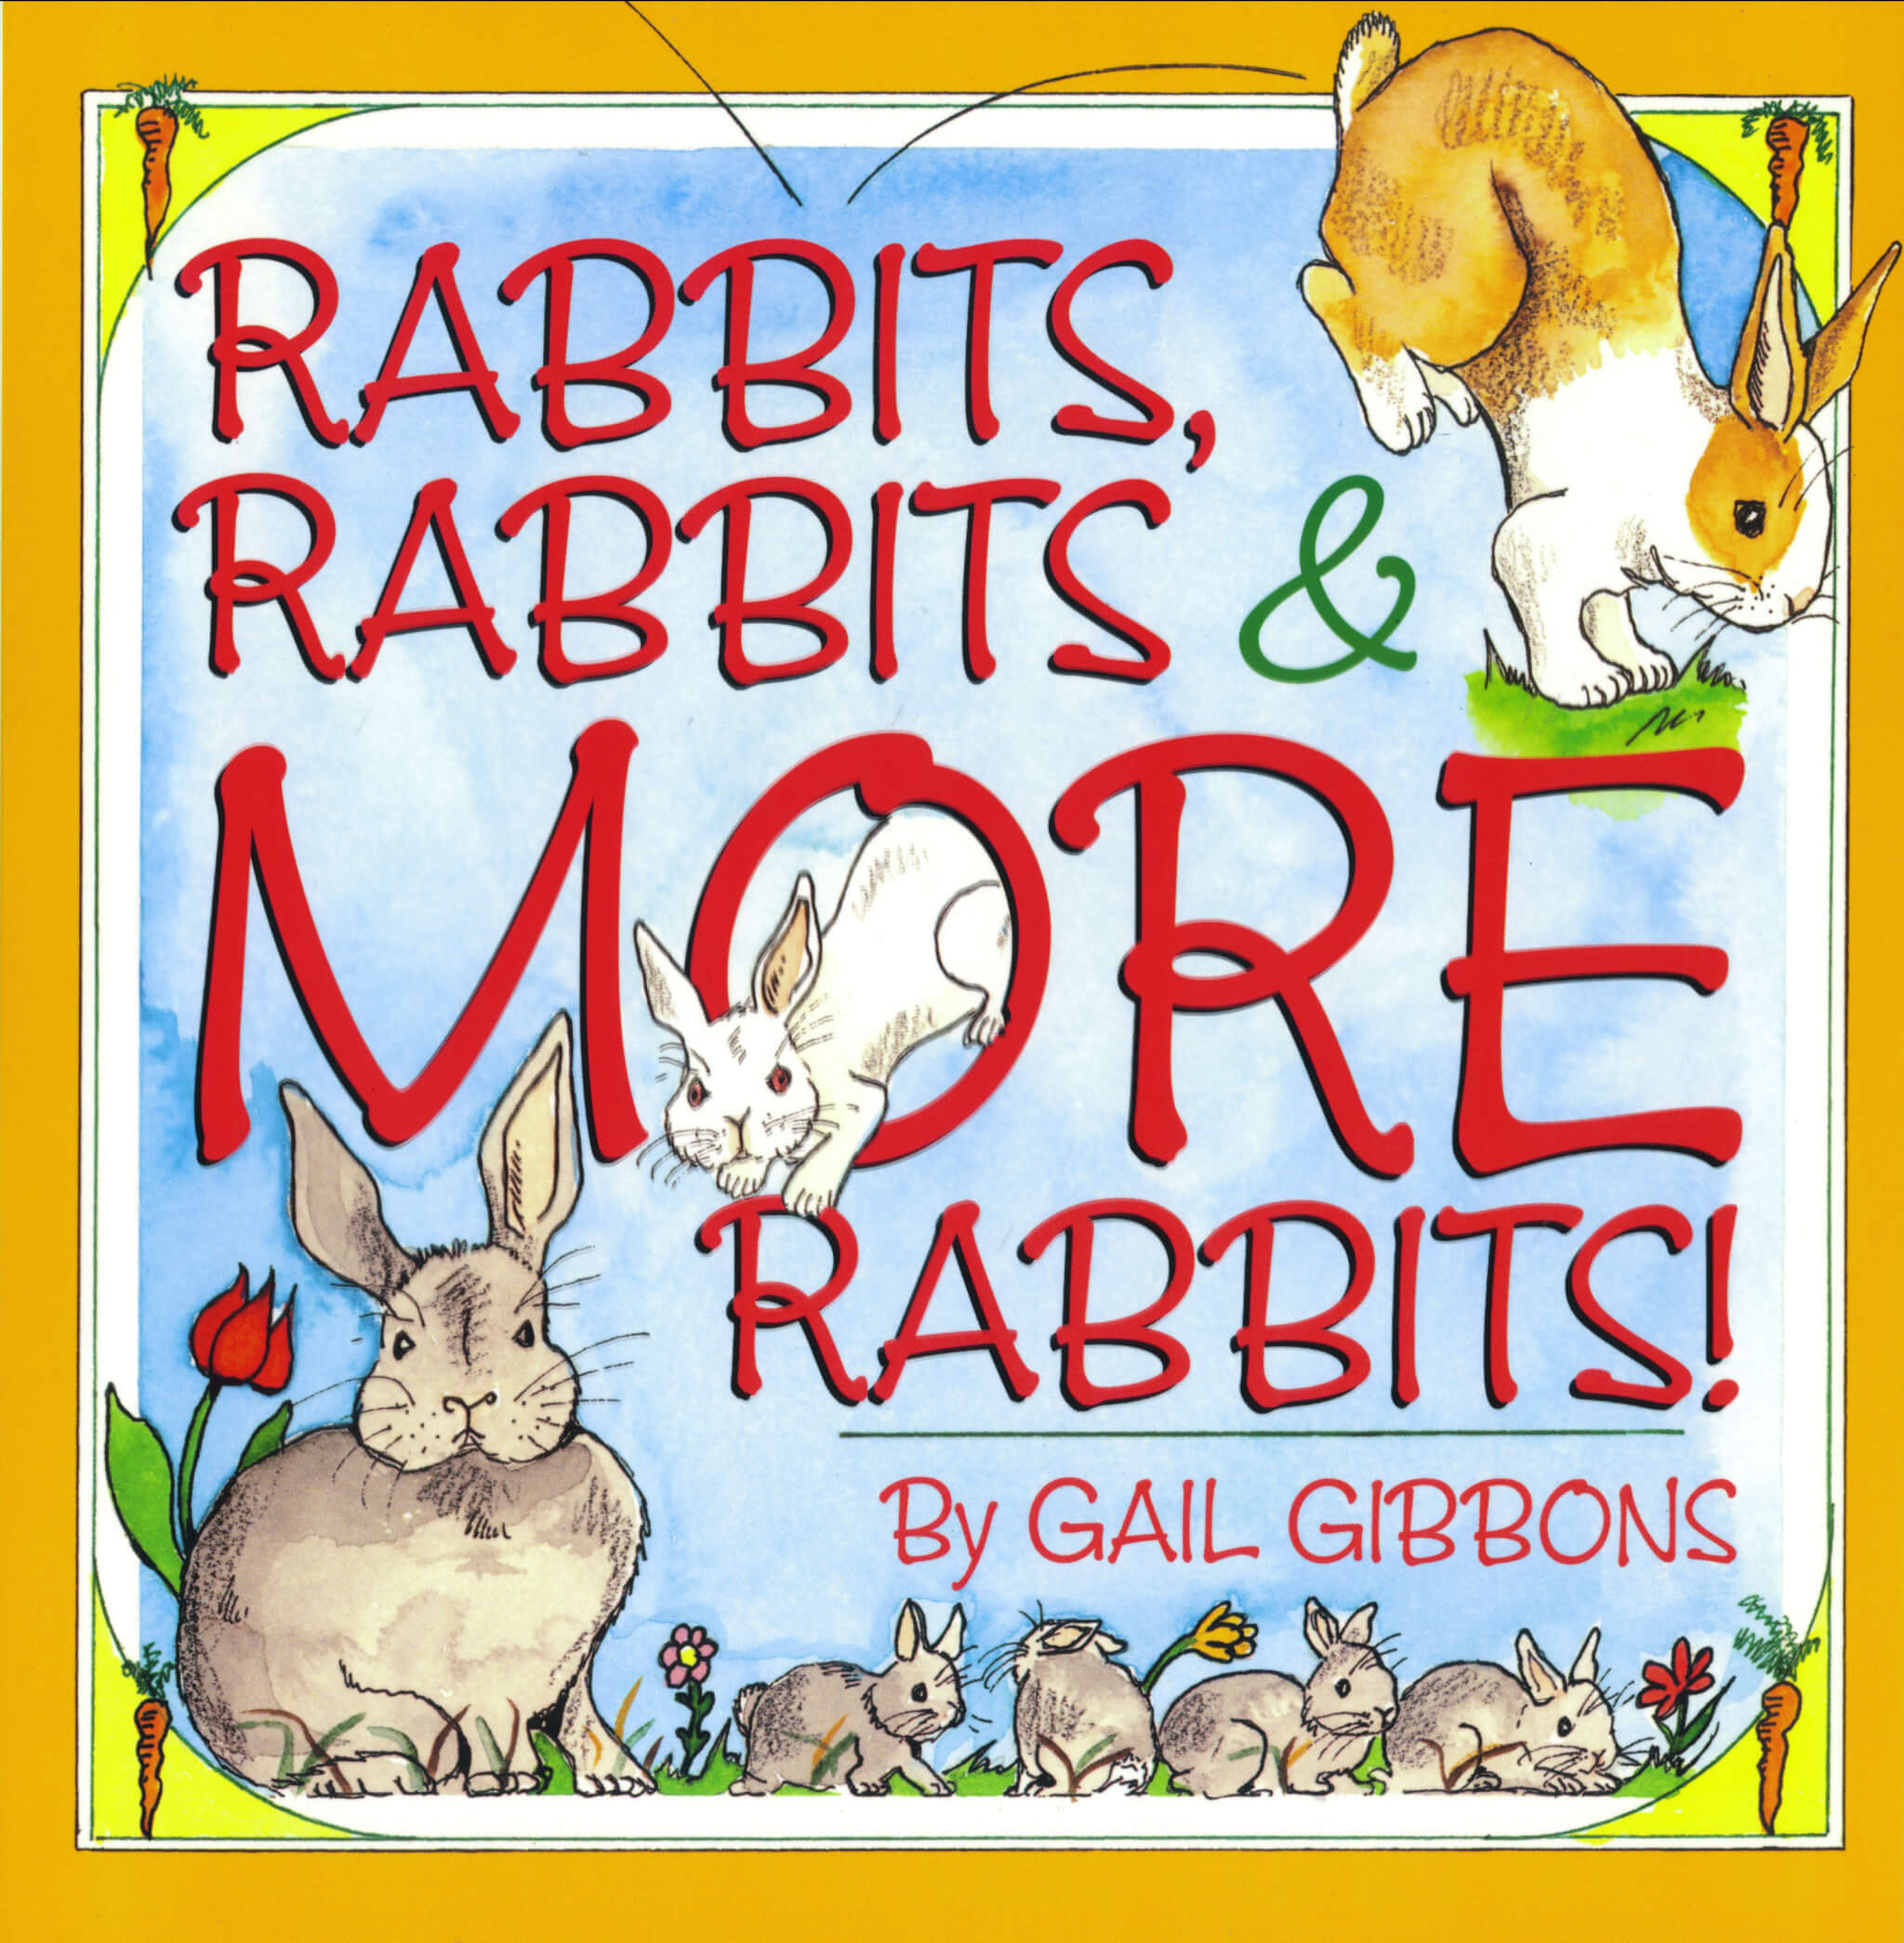 Rabbits, Rabbits, & More Rabbits